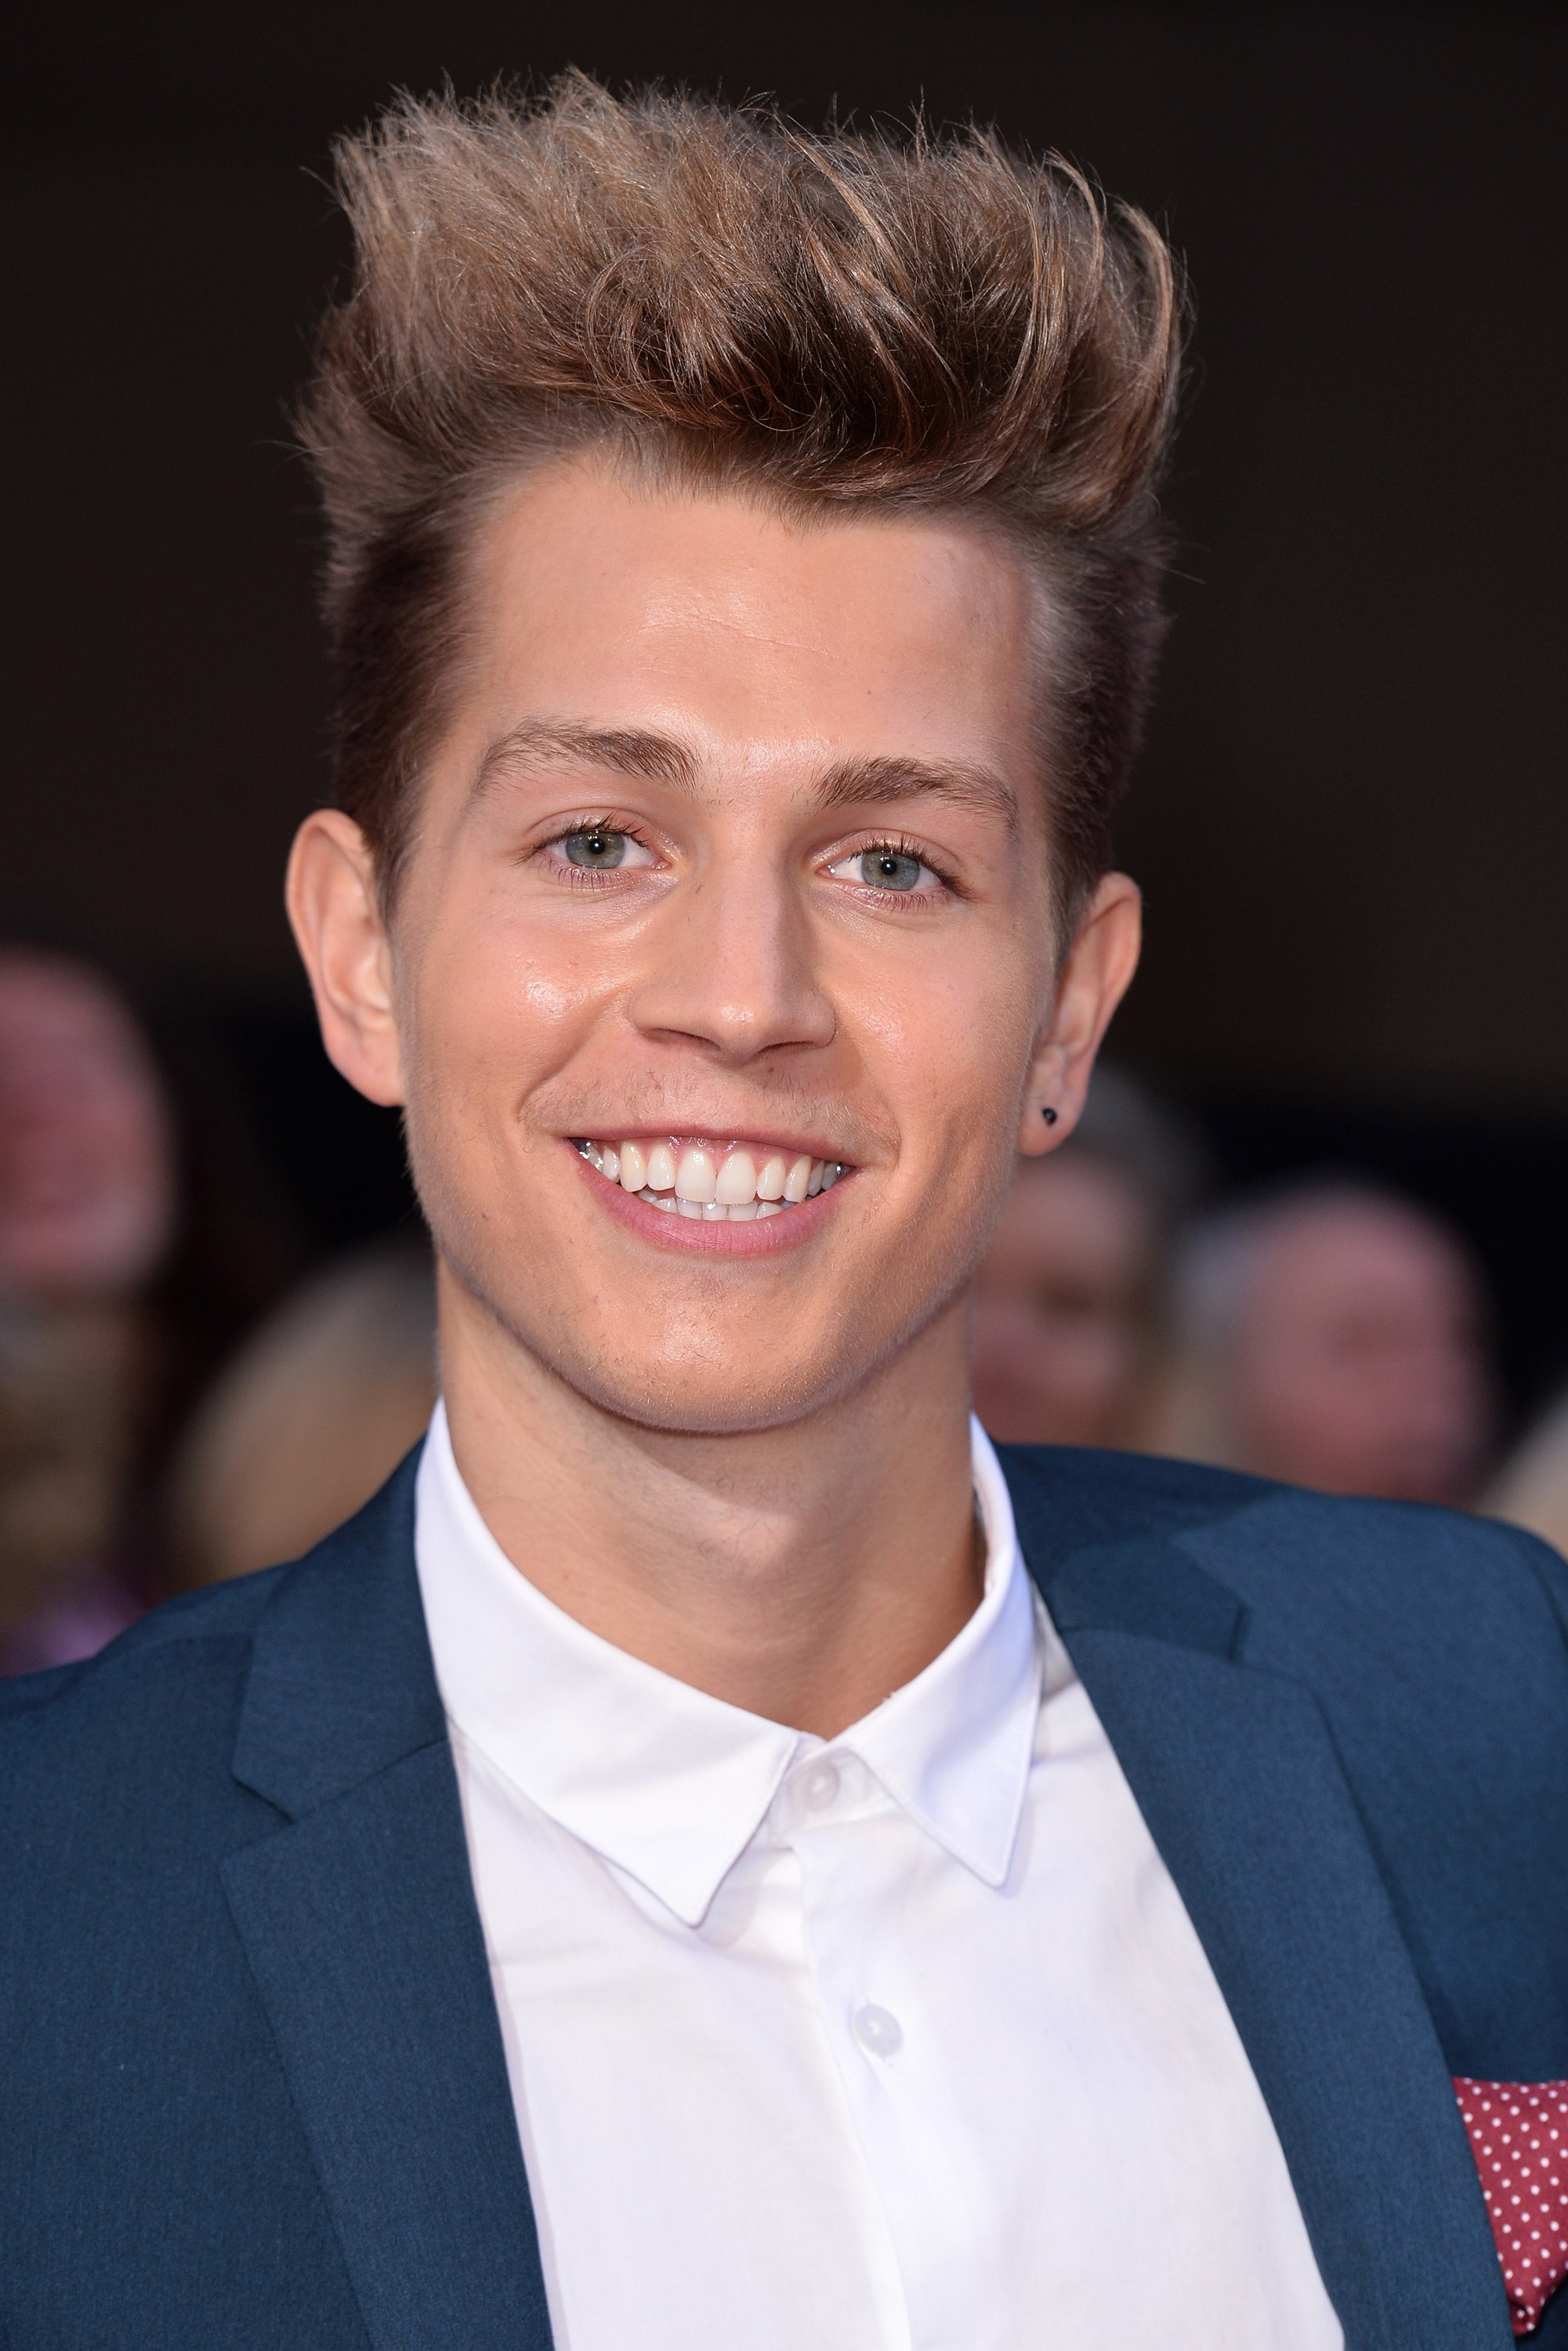 Guitarist James McVey - age: 26